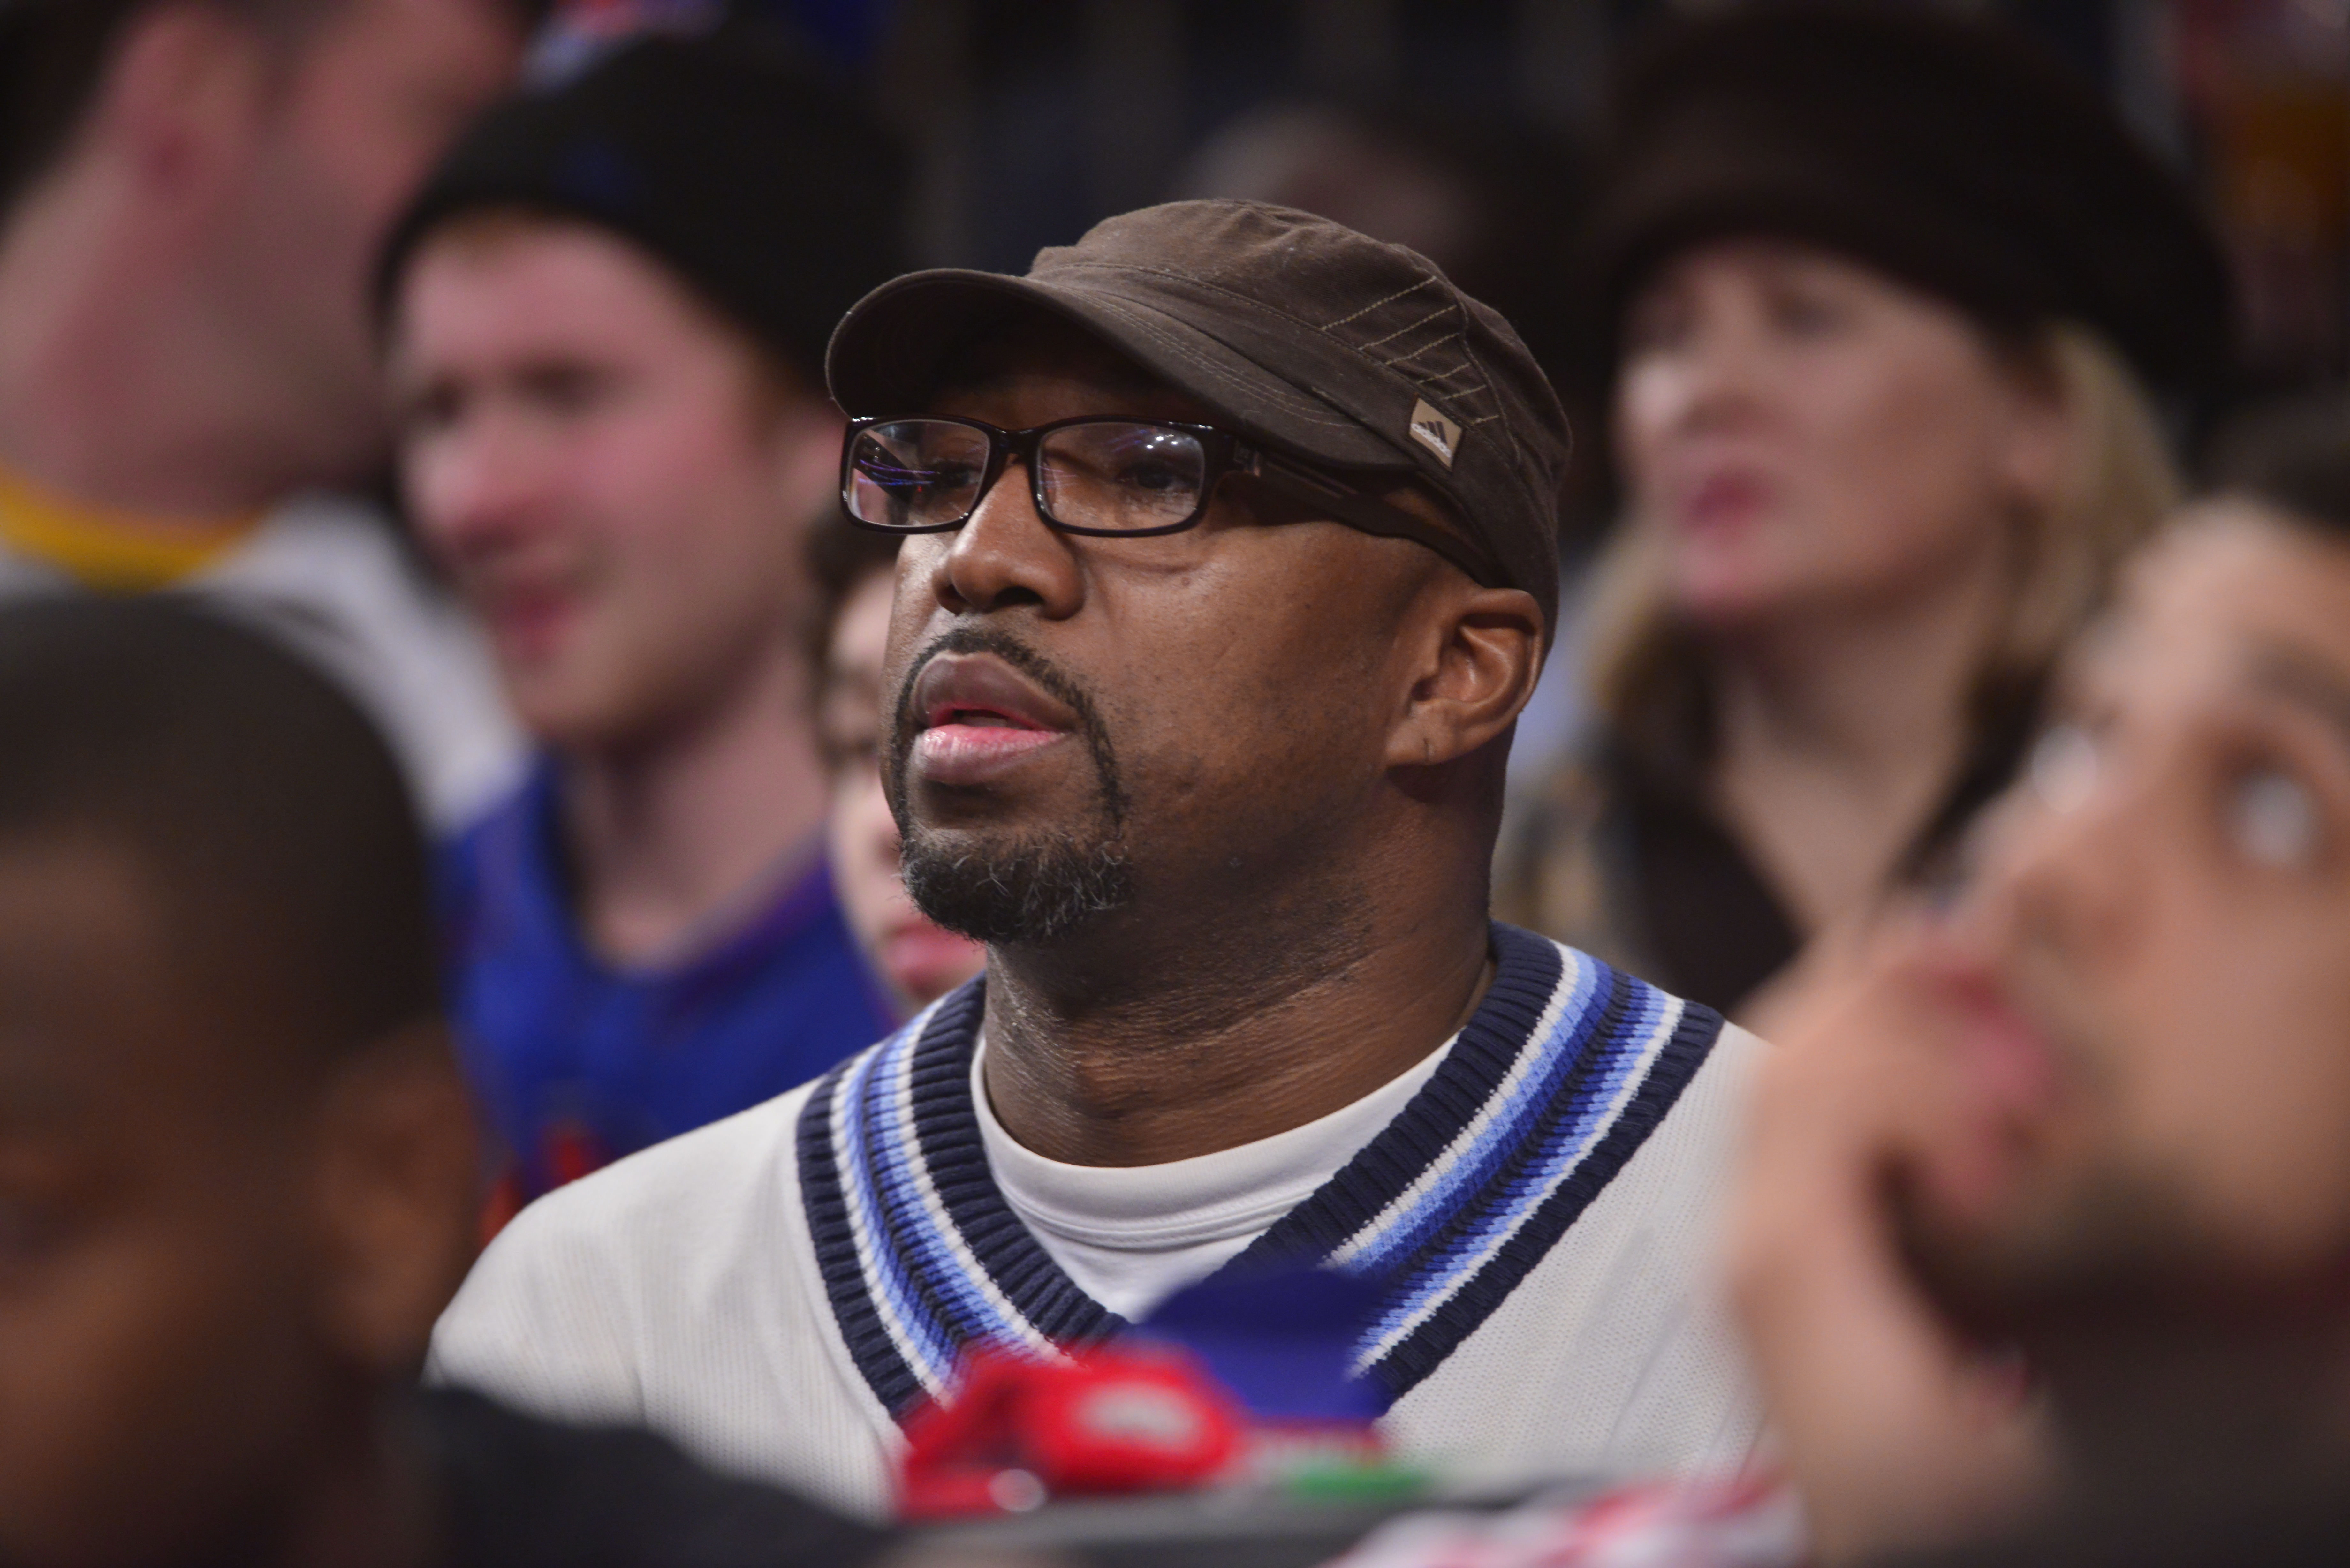 Former NBA player, Vin Baker attends the Toronto Raptors game against the New York Knicks on December 27, 2013 at Madison Square Garden in New York City, New York.  Baker played at the University of Hartford, and has lived in Connecticut.  (Photo by Jesse D. Garrabrant/NBAE via Getty Images)